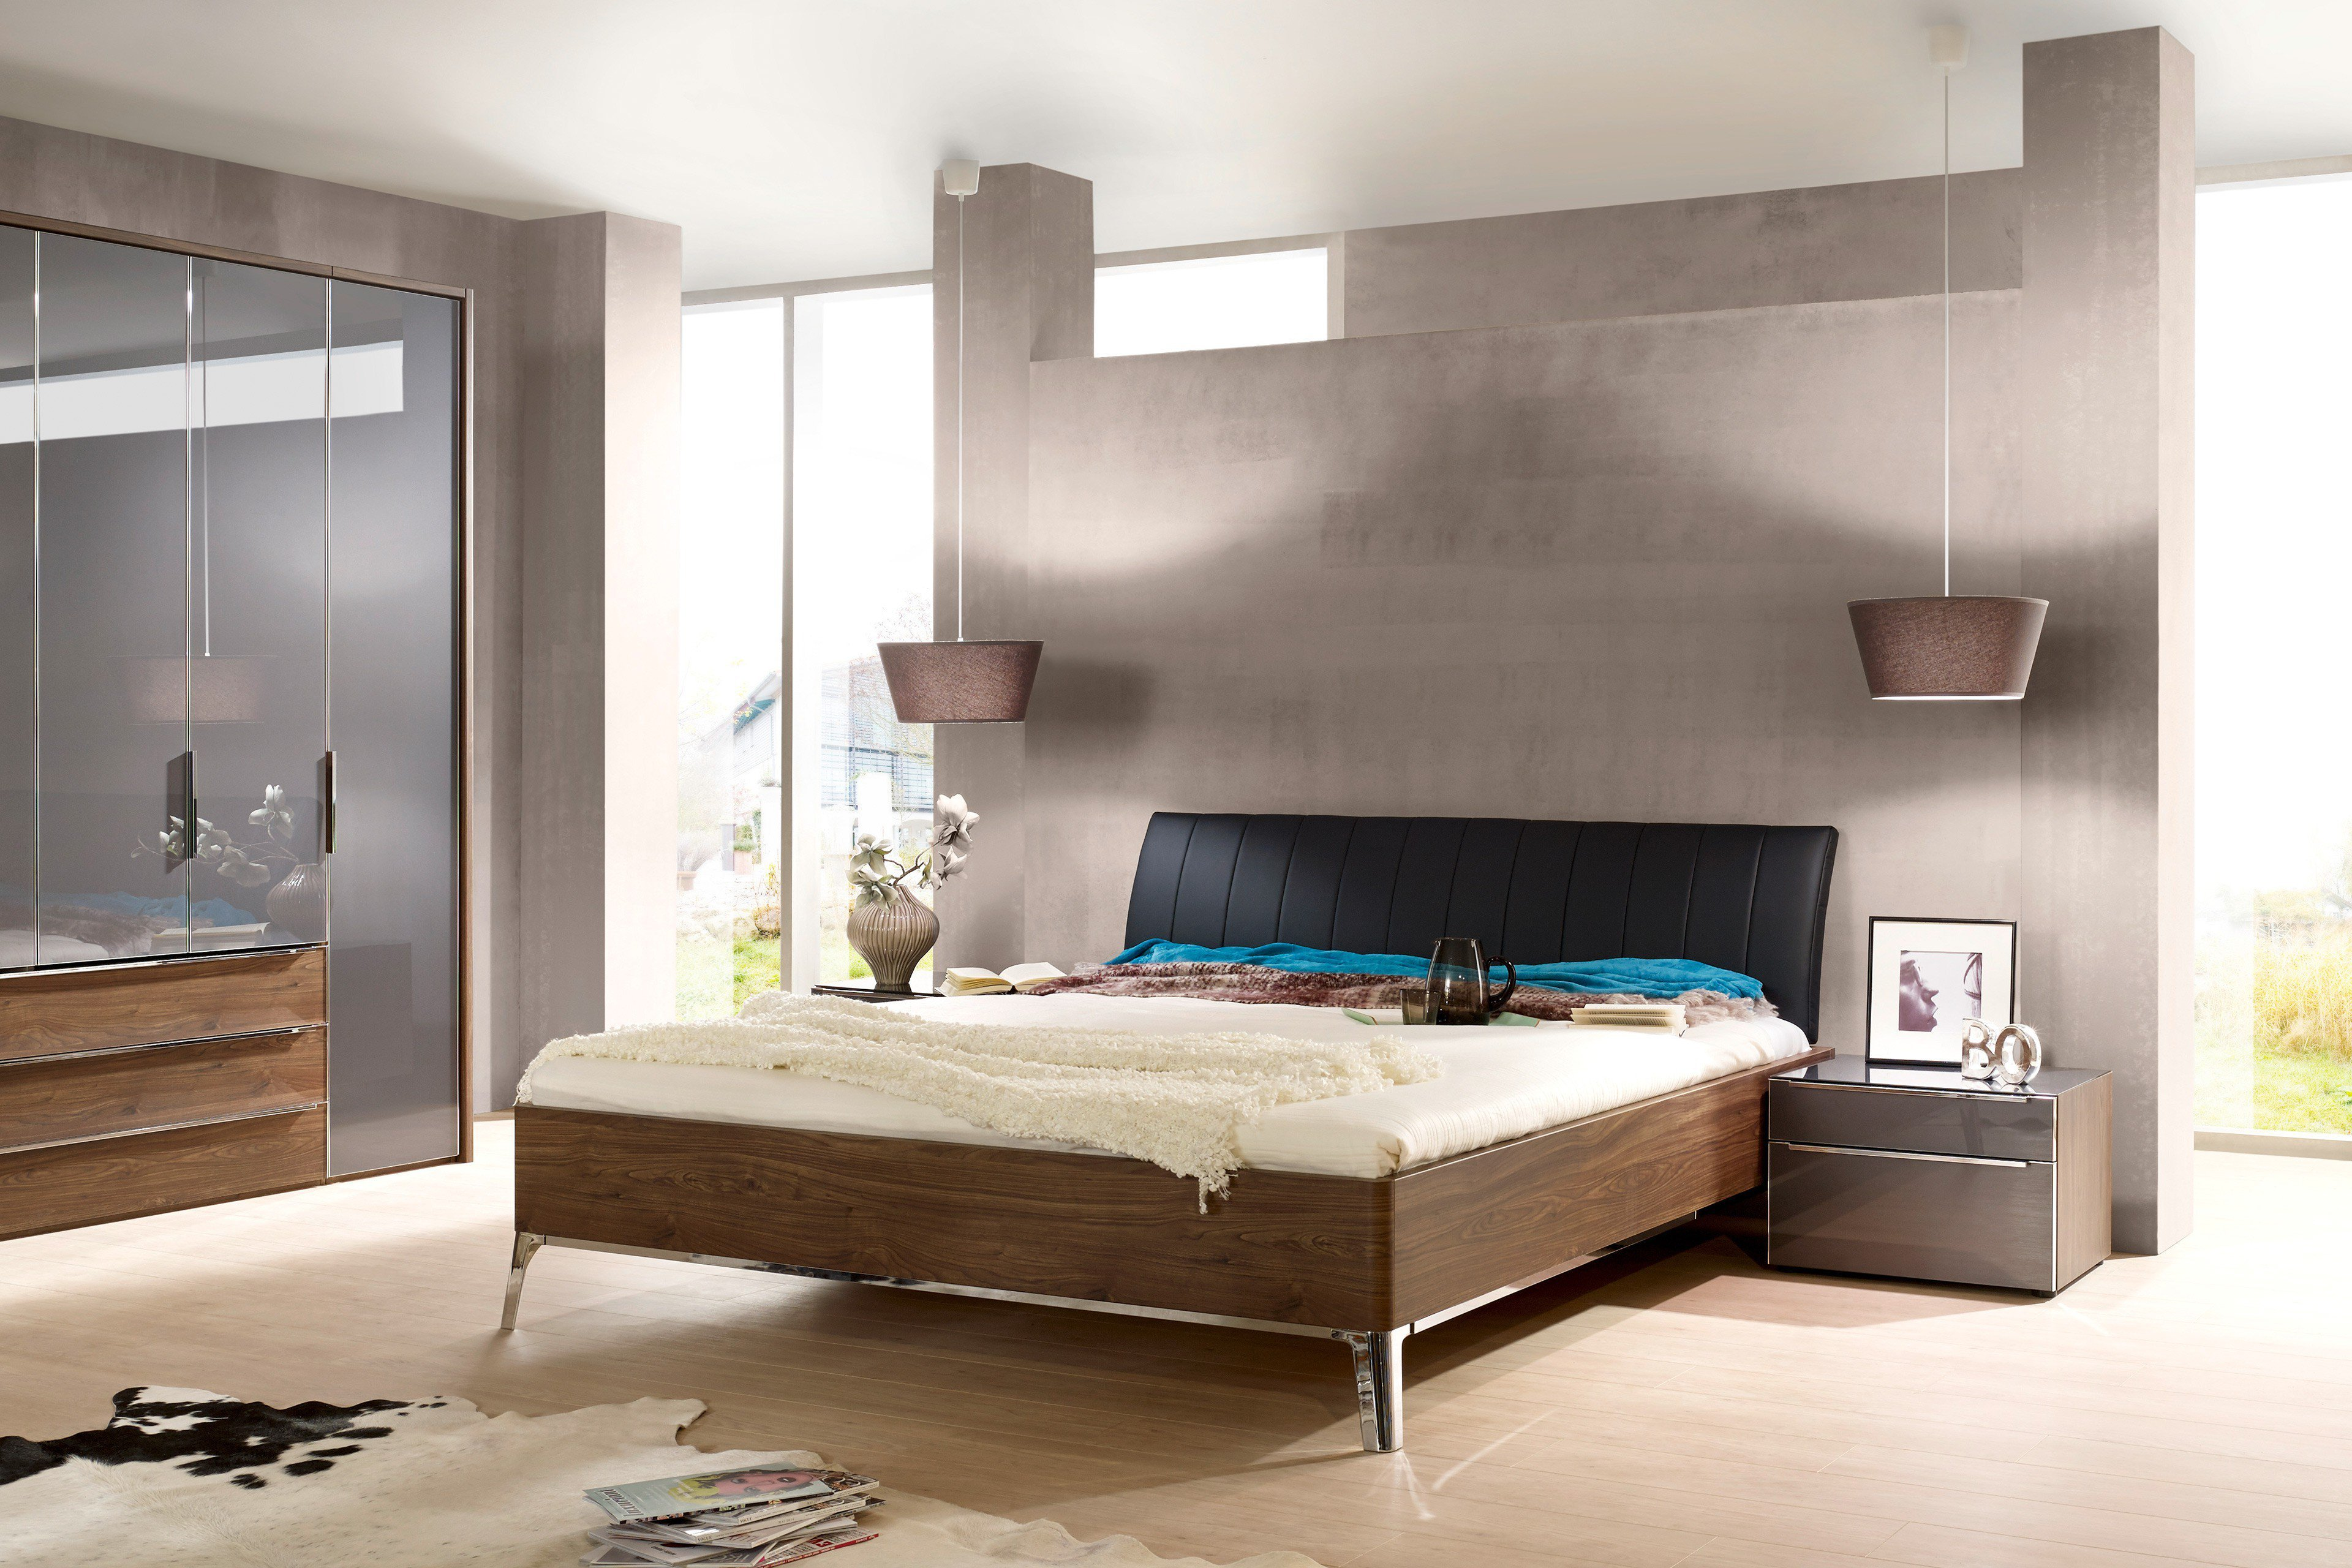 nolte doppelbett sonyo macadamia nussbaum m bel letz ihr online shop. Black Bedroom Furniture Sets. Home Design Ideas